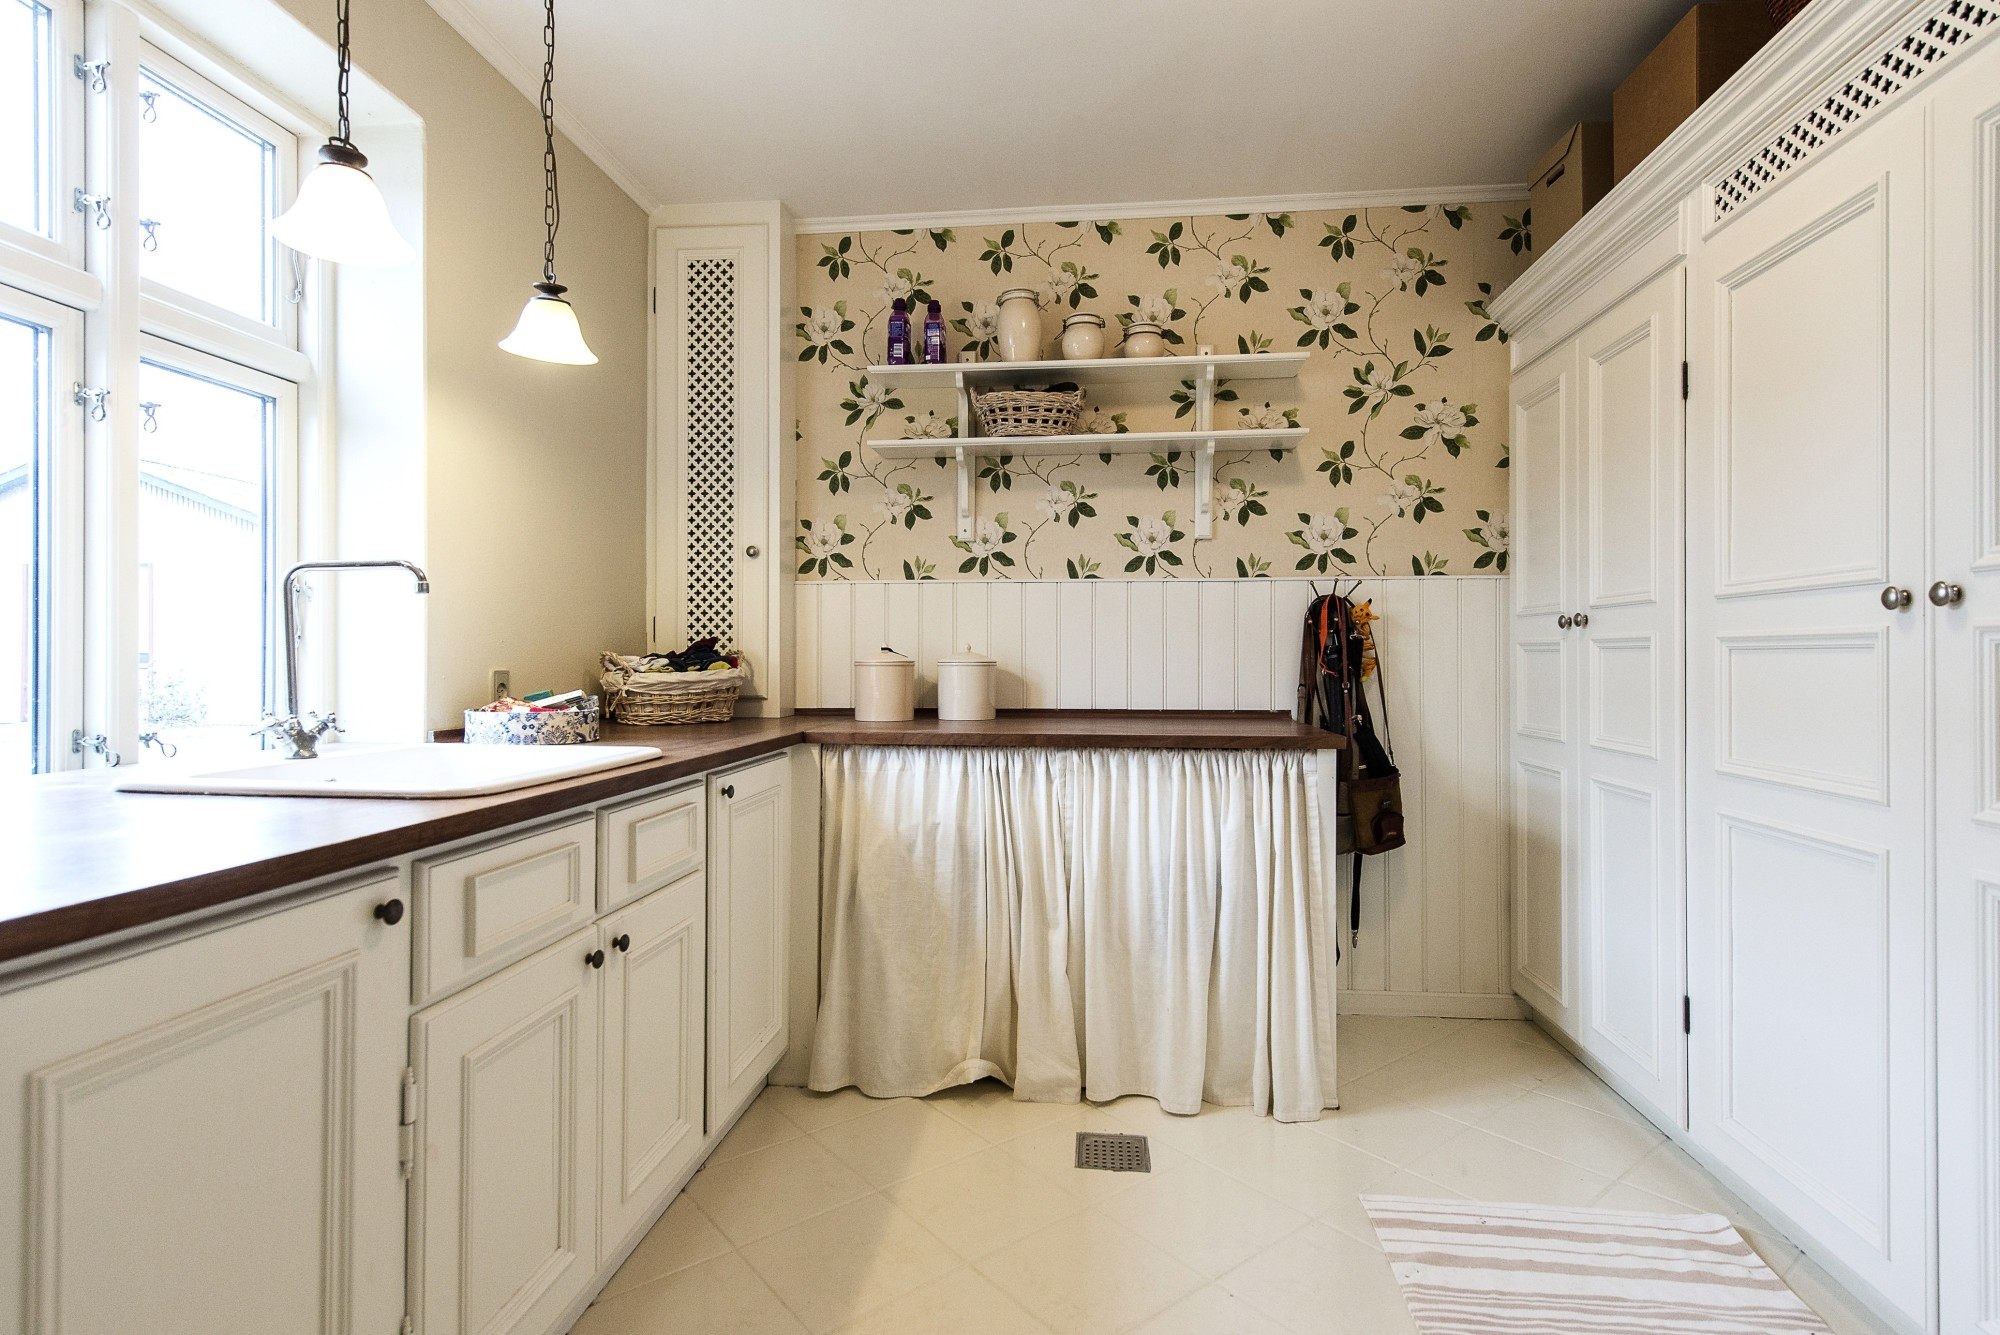 How to Choose Kitchen Cabinets You'll Absolutely Love